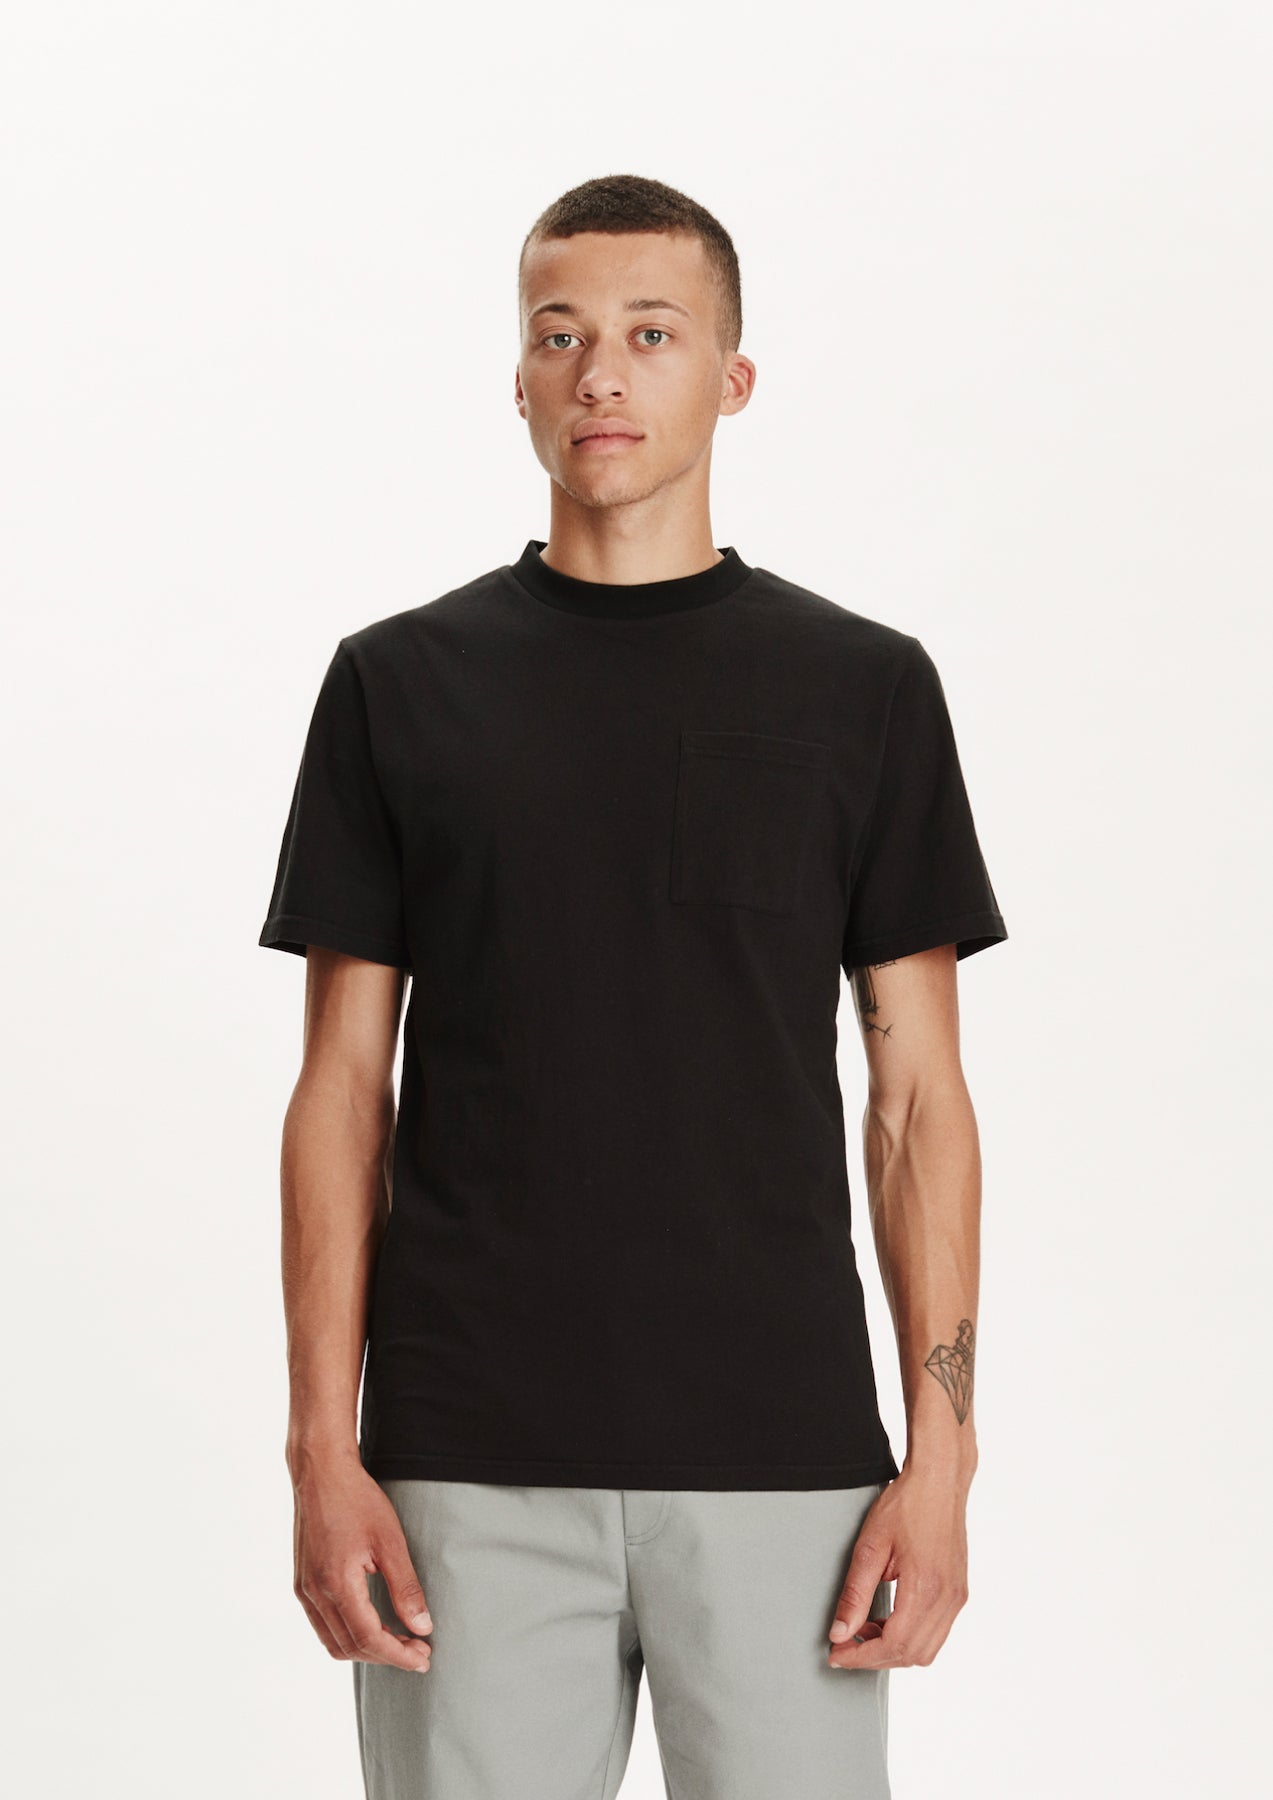 Legends Men's Pena Black Pocket T-shirt